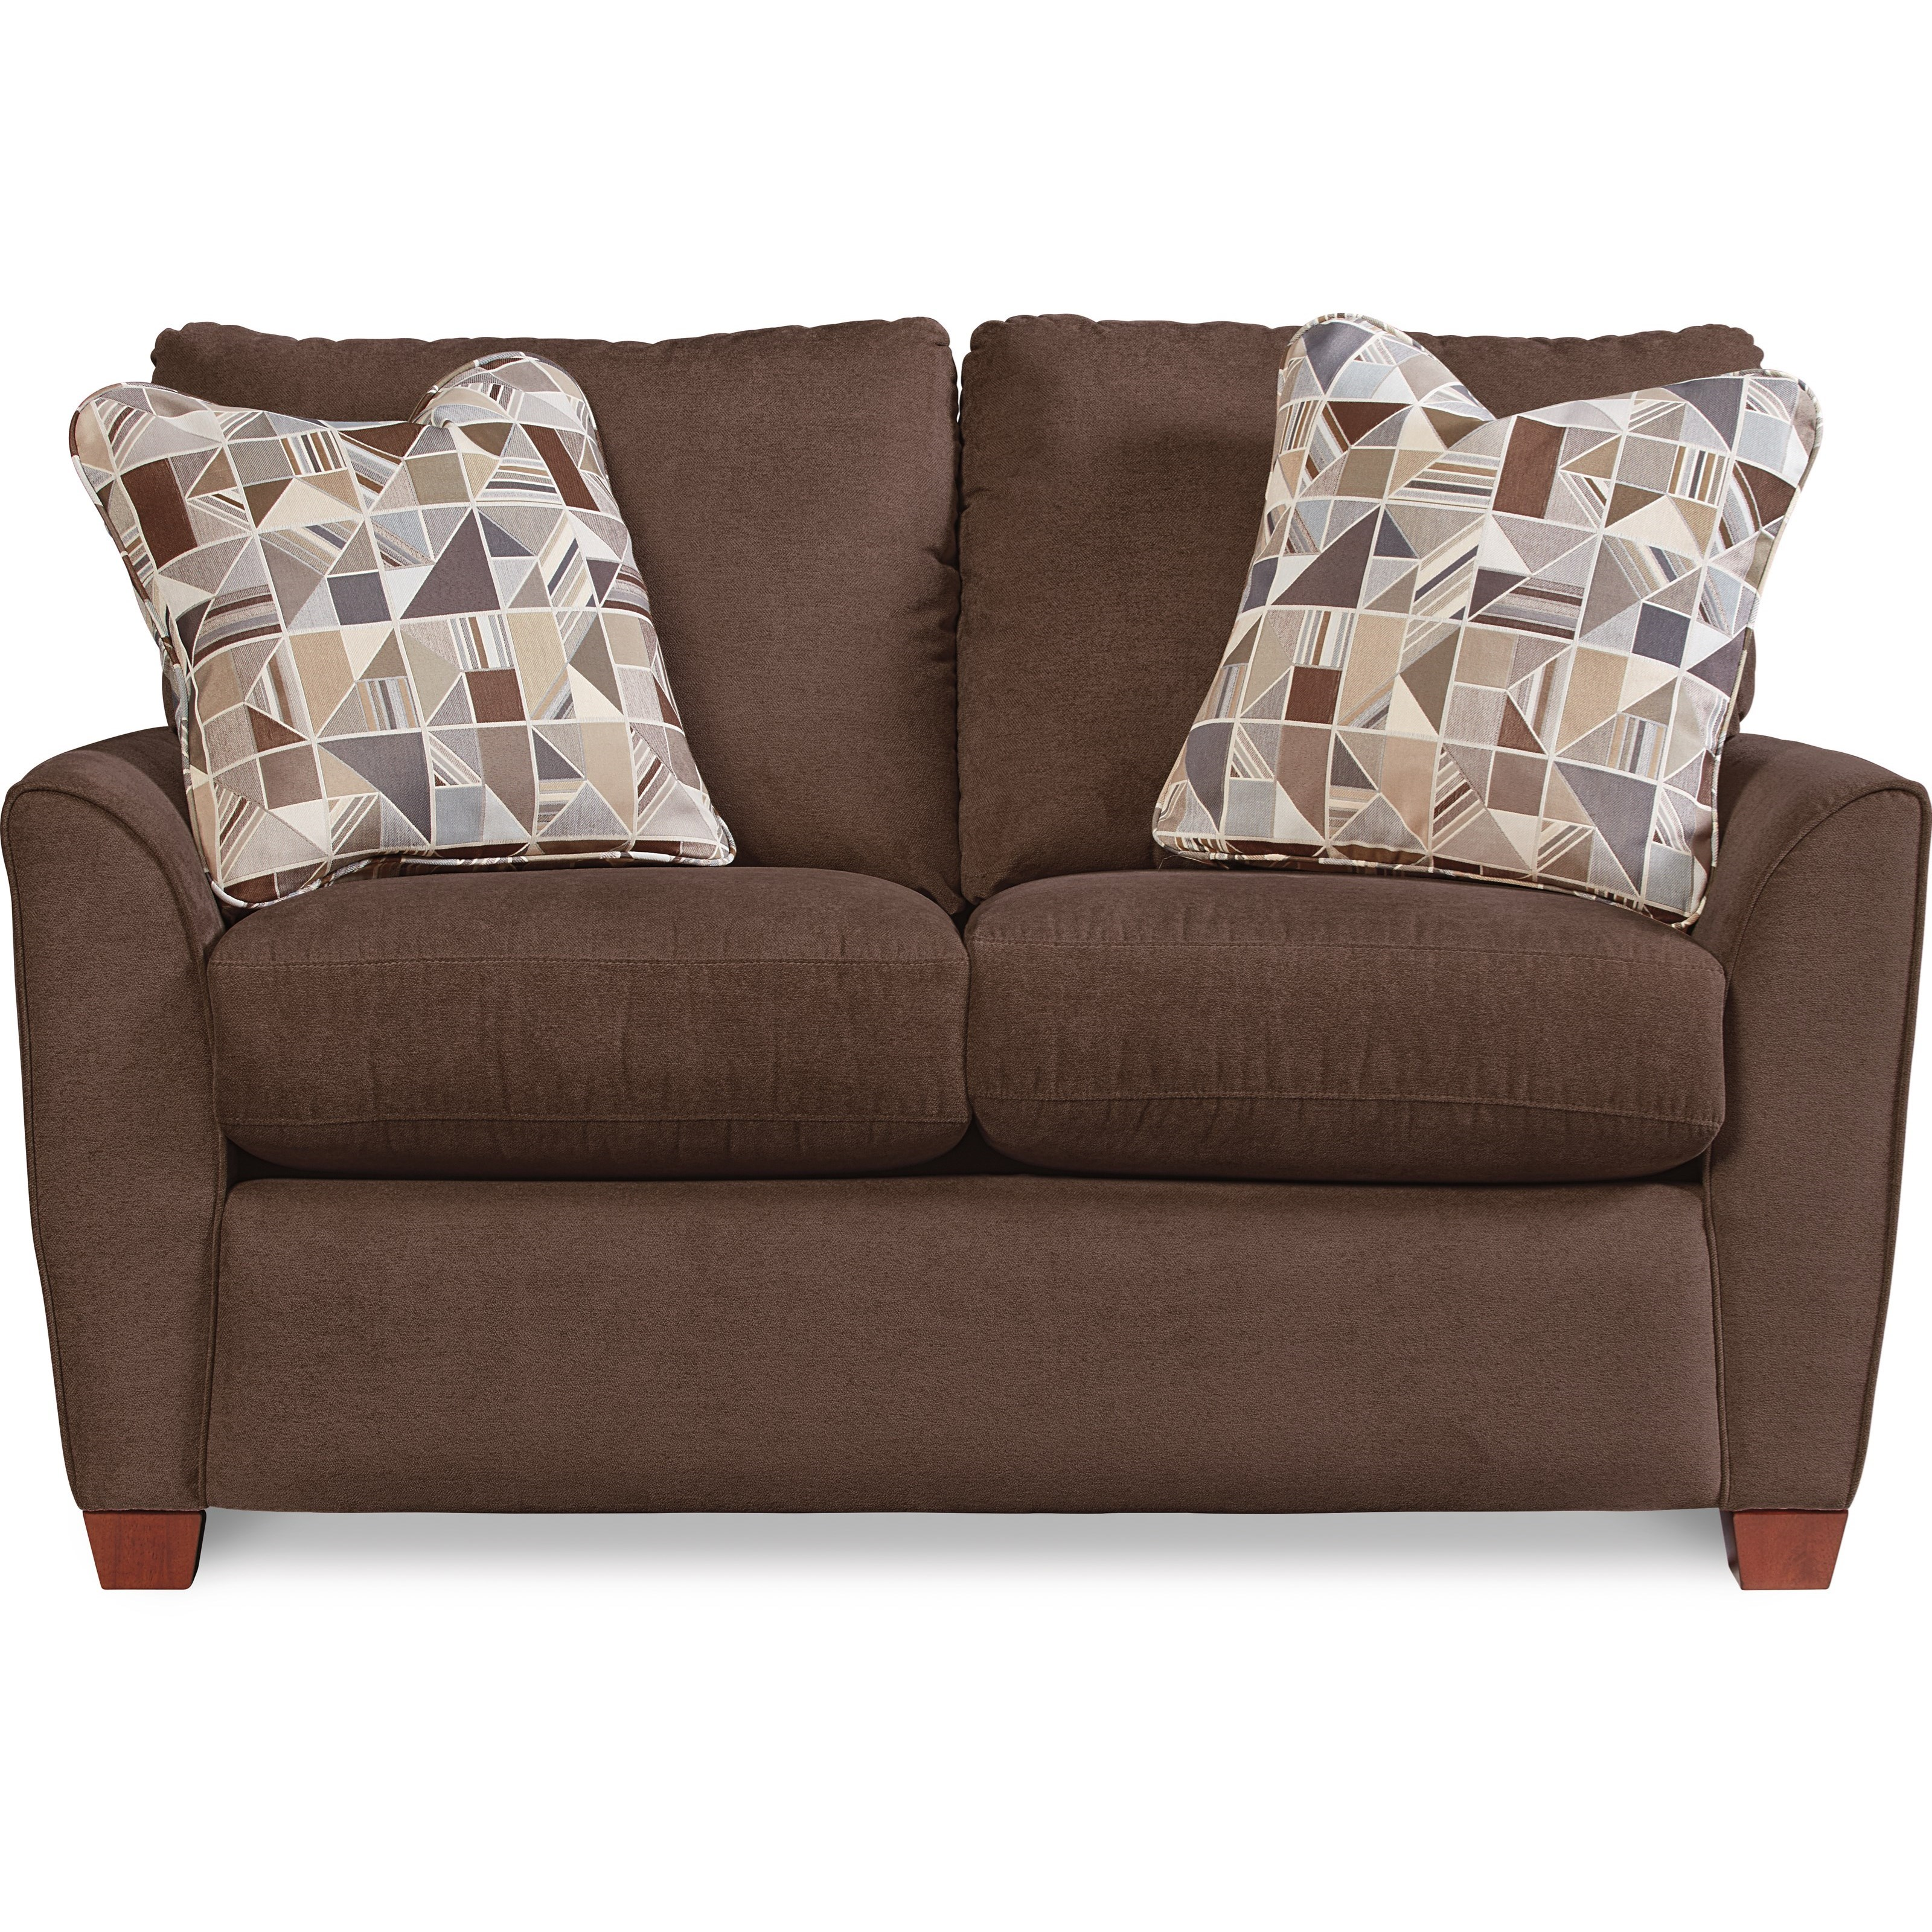 Amy La-Z-Boy® Premier Loveseat by La-Z-Boy at Fisher Home Furnishings